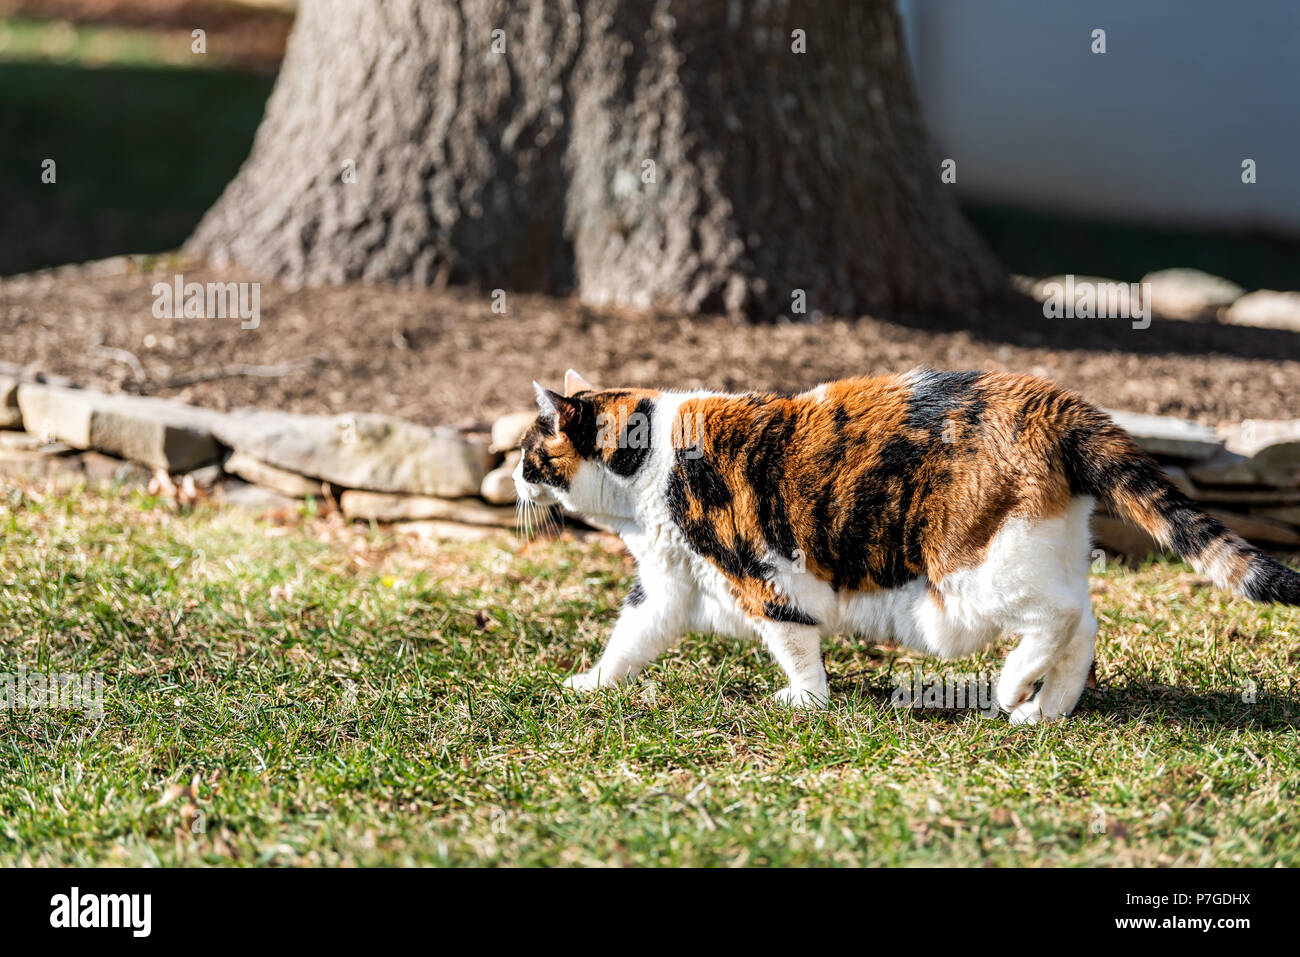 Cautious outdoors calico cat outside walking in garden, curious in front or back yard of home or house with tree - Stock Image